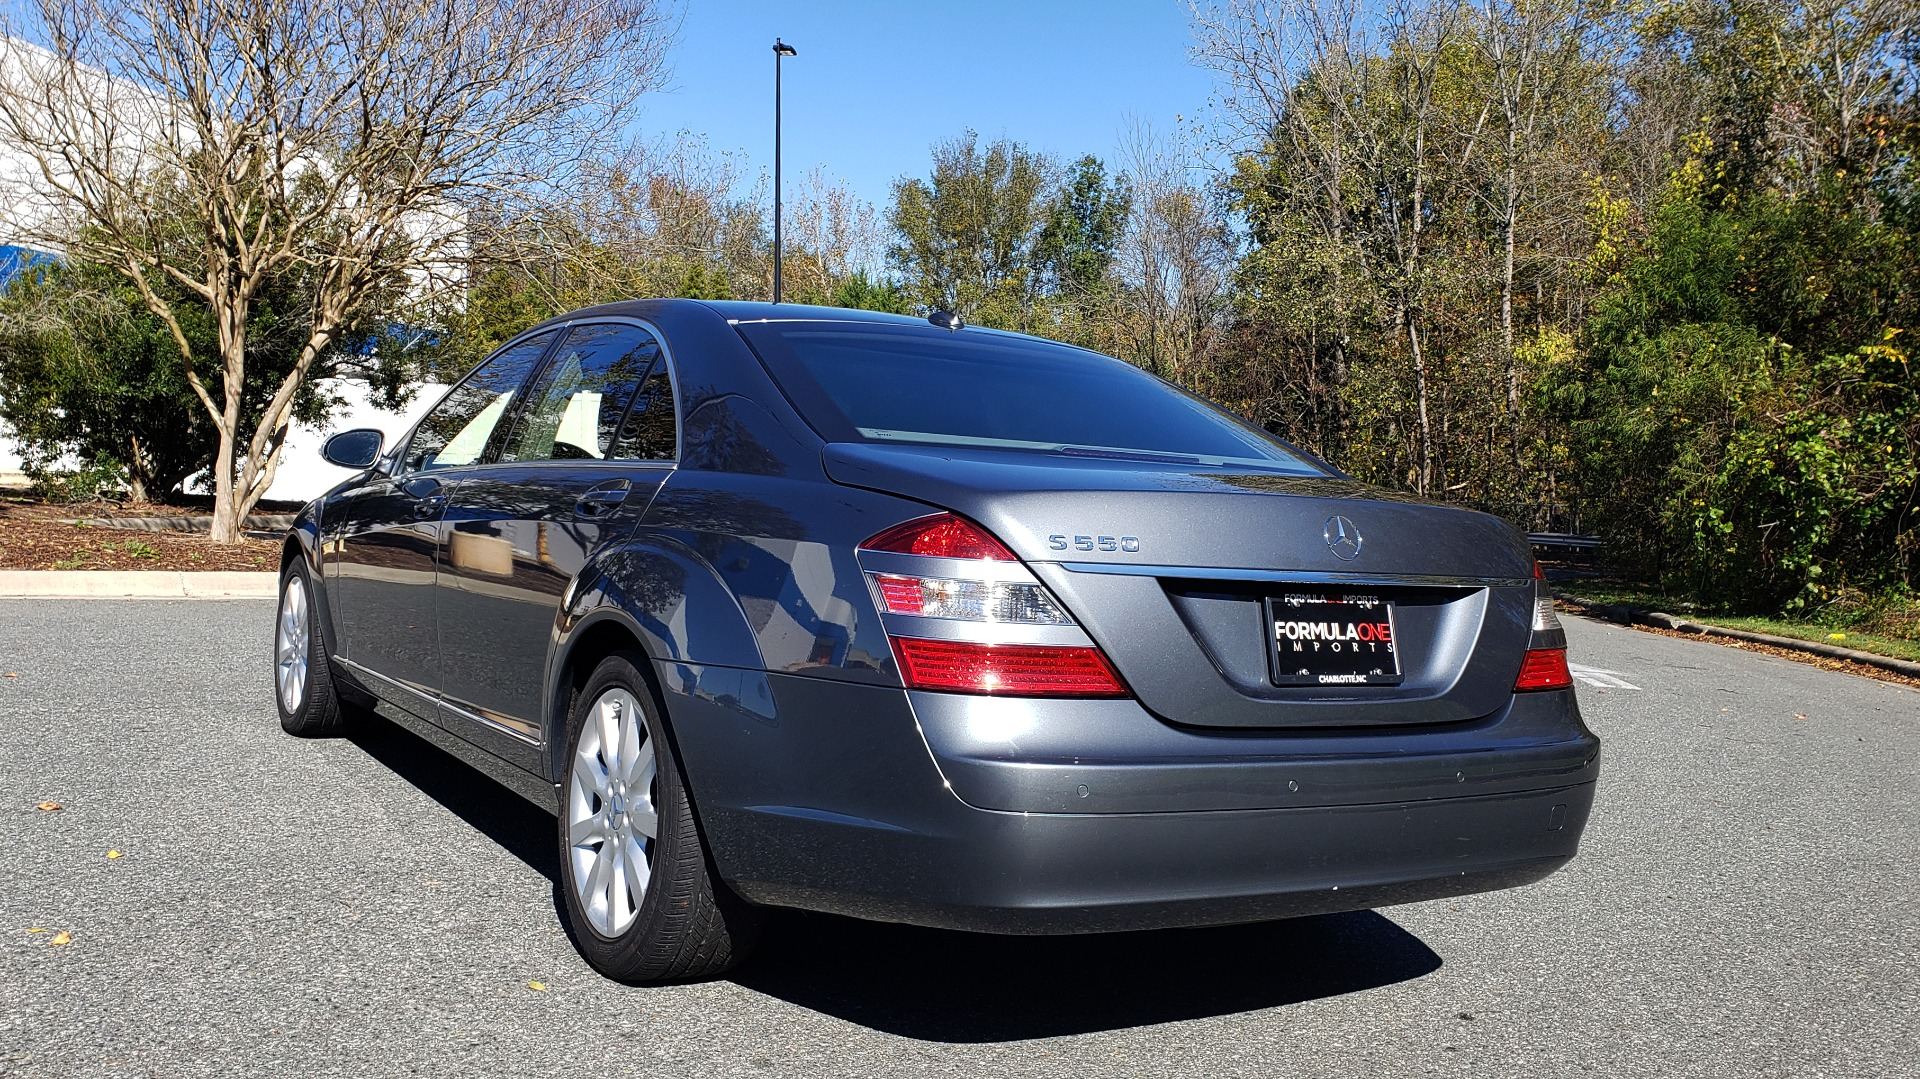 Used 2007 Mercedes-Benz S-CLASS S550 5.5L V8 / LWB / PREM 2 / NAV / SUNROOF / KEYLESS-GO for sale Sold at Formula Imports in Charlotte NC 28227 4